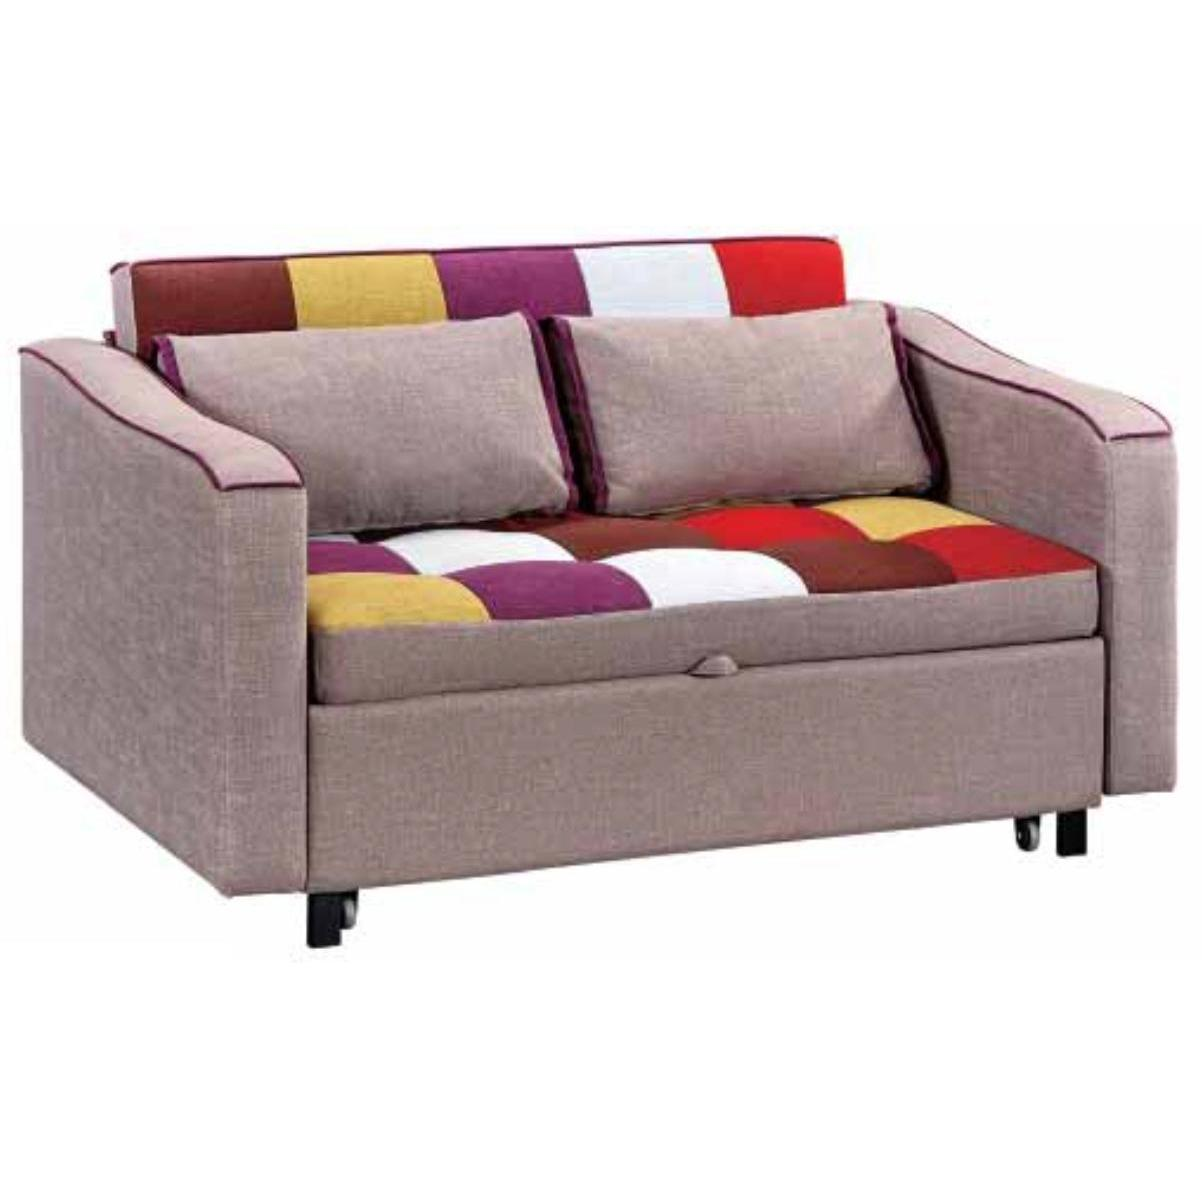 Sofa bed with arms patchwork for Sofa patchwork